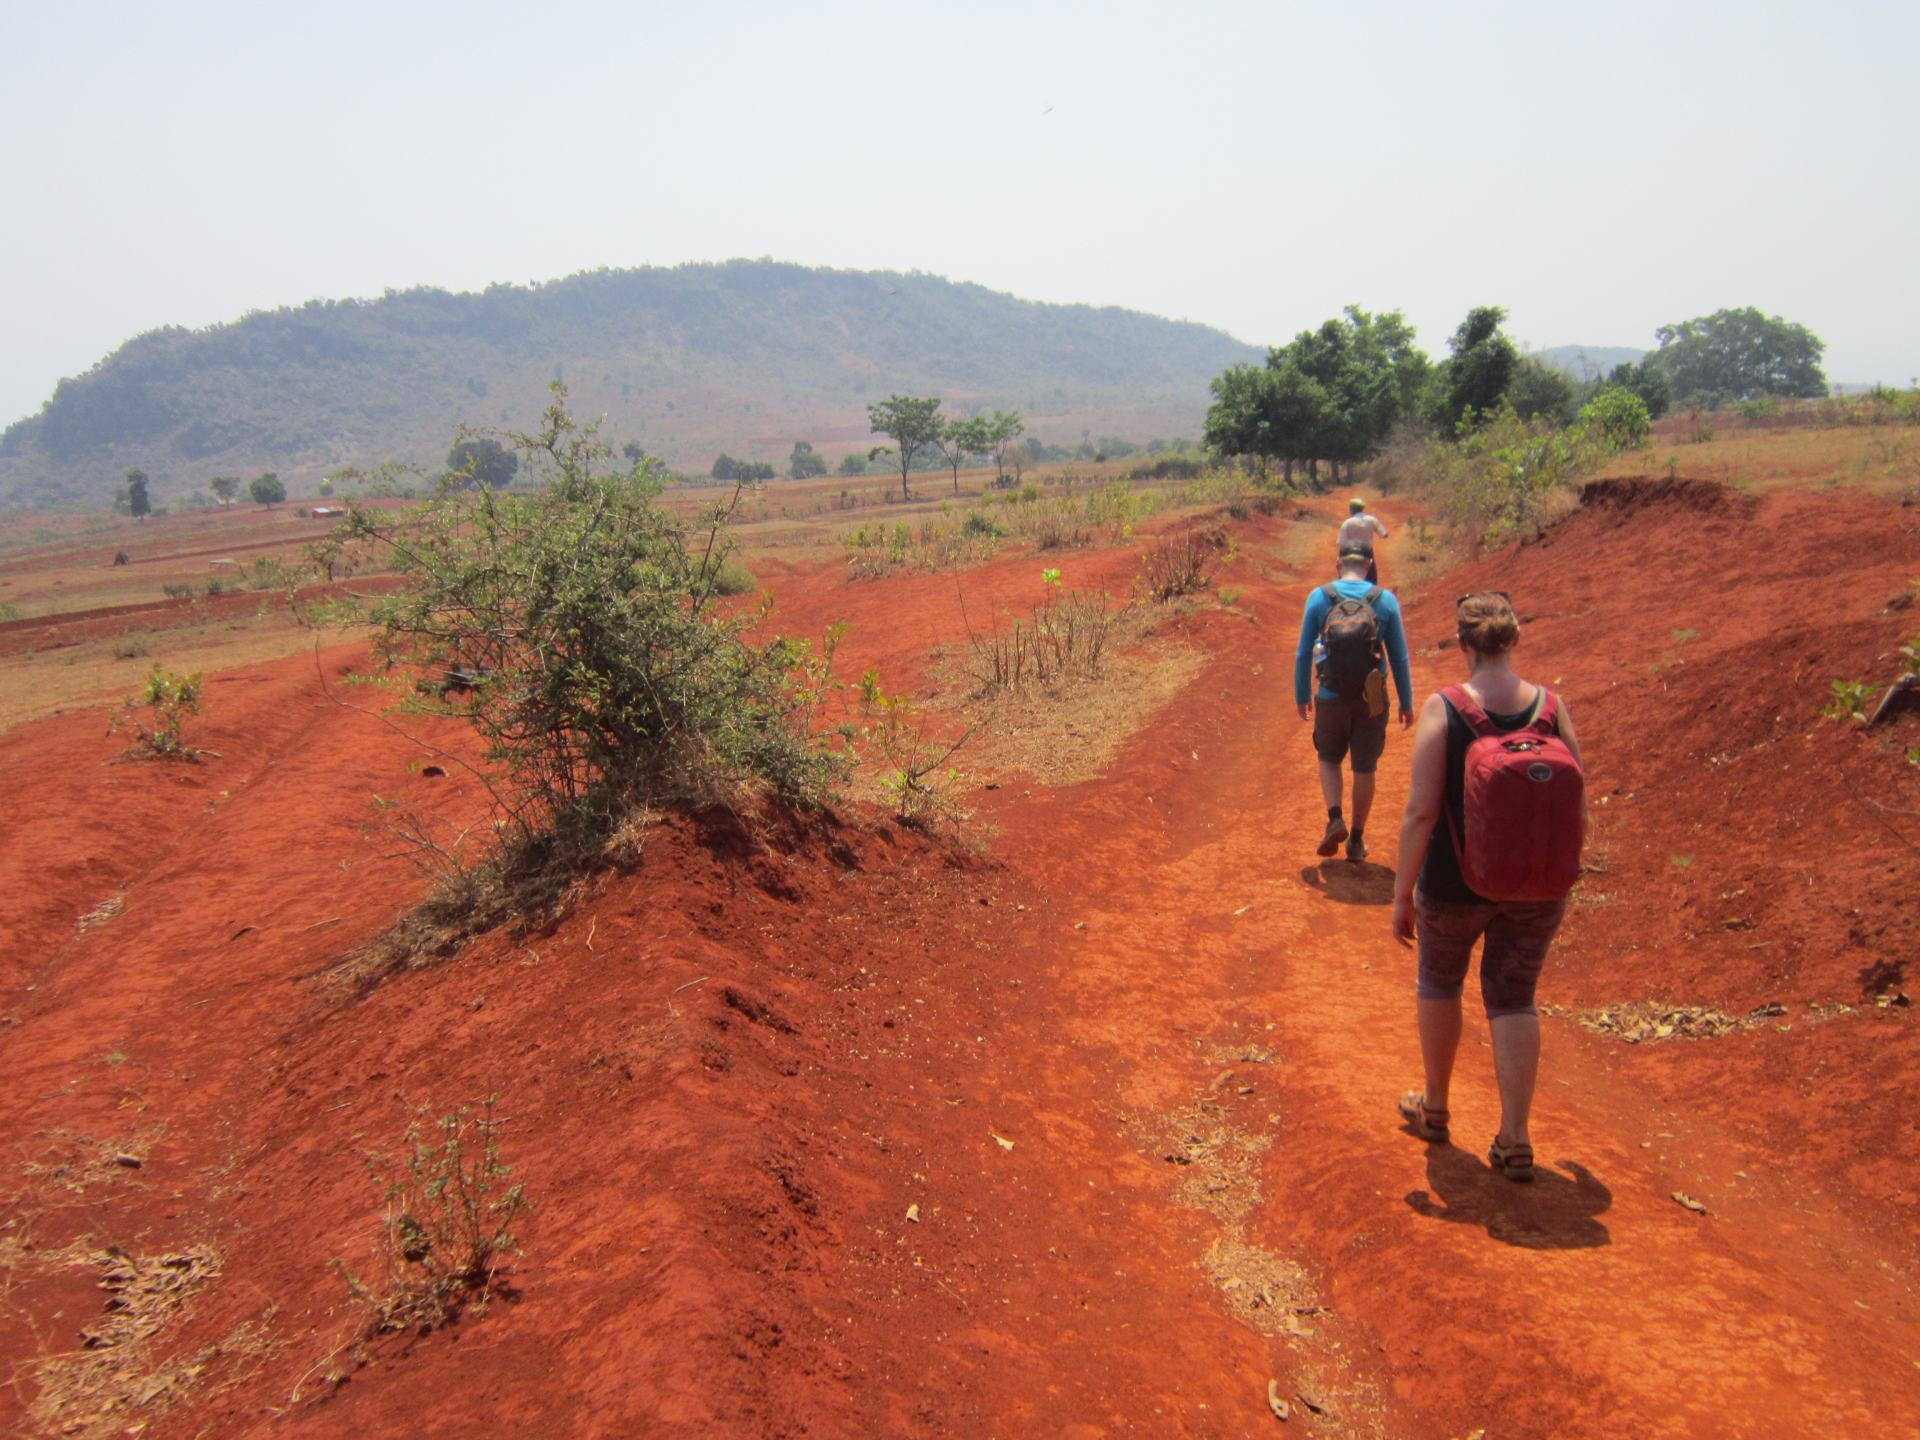 One of my big Southeast Asia backpacking tips is to go trekking. This shows people trekking across the red terrain of Myanmar's Shan State